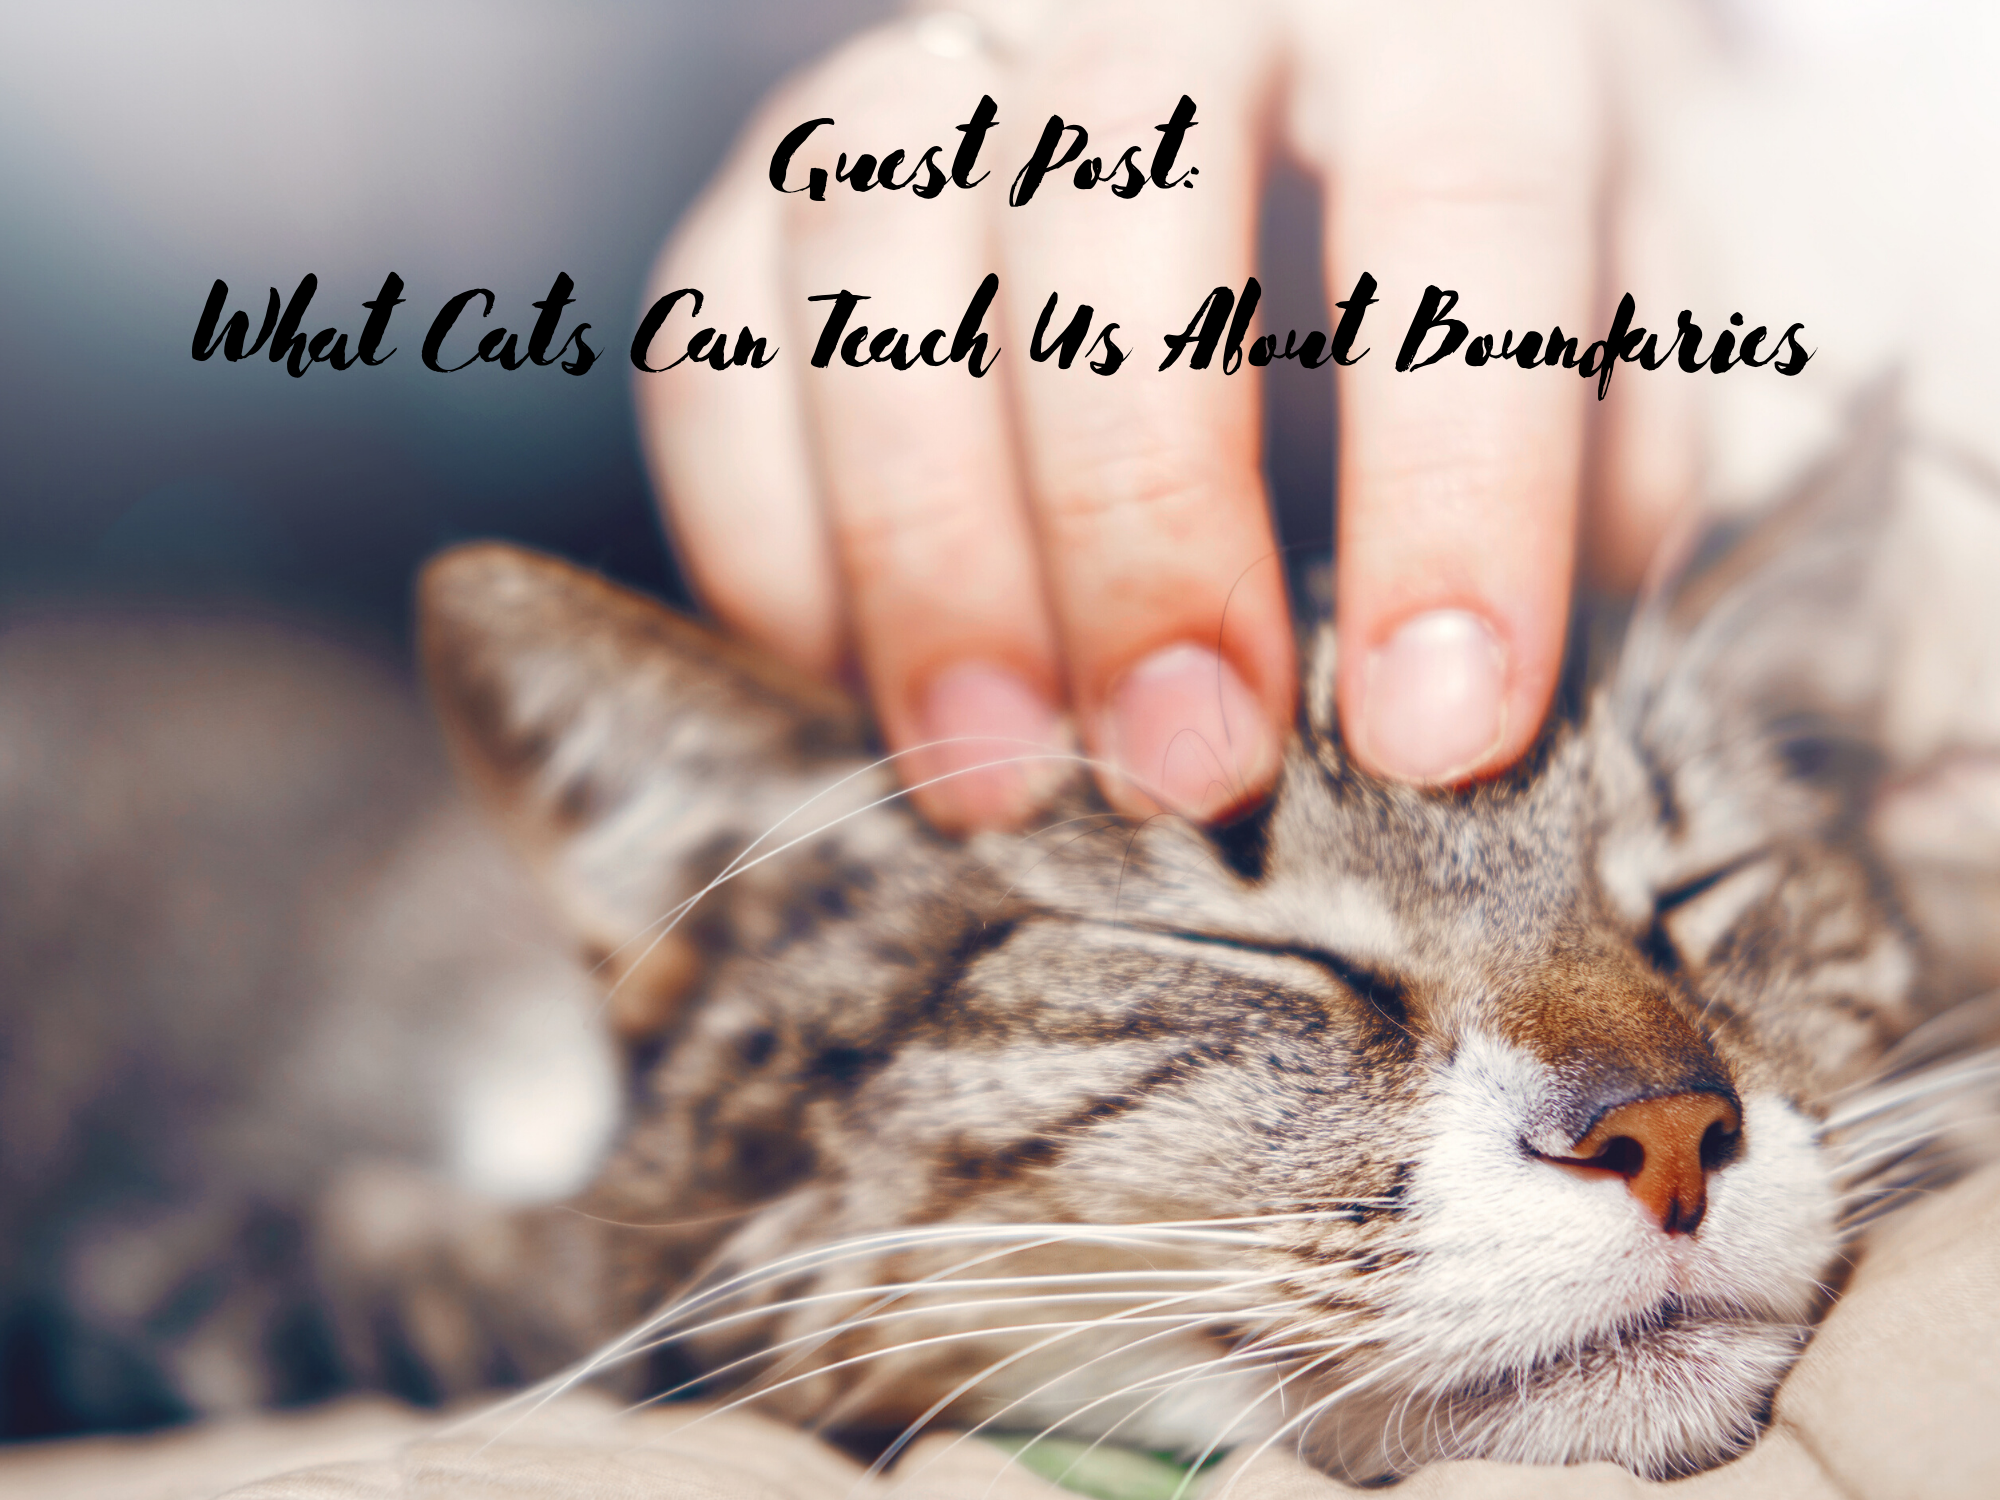 [Guest Blog] What Cats Can Teach Us About Boundaries by Quenby